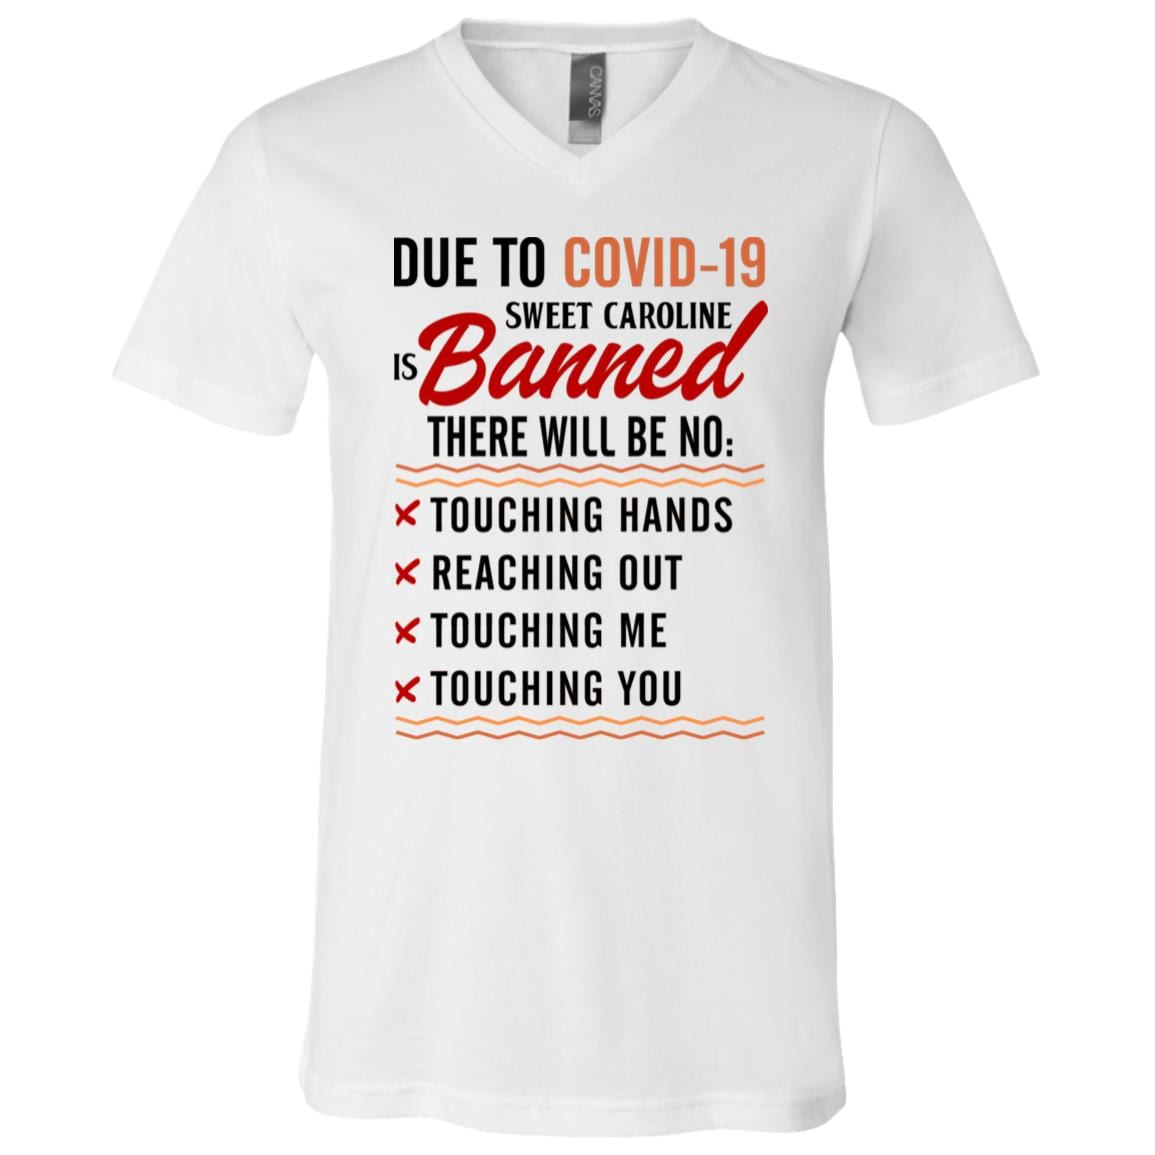 Sweatshirt Hoodie Tank Top Long Sleeve Due To Covid 19 Sweet Caroline Is Banned There Will Be No Touching Hand Touching Me Reaching Out Touching You T Shirt